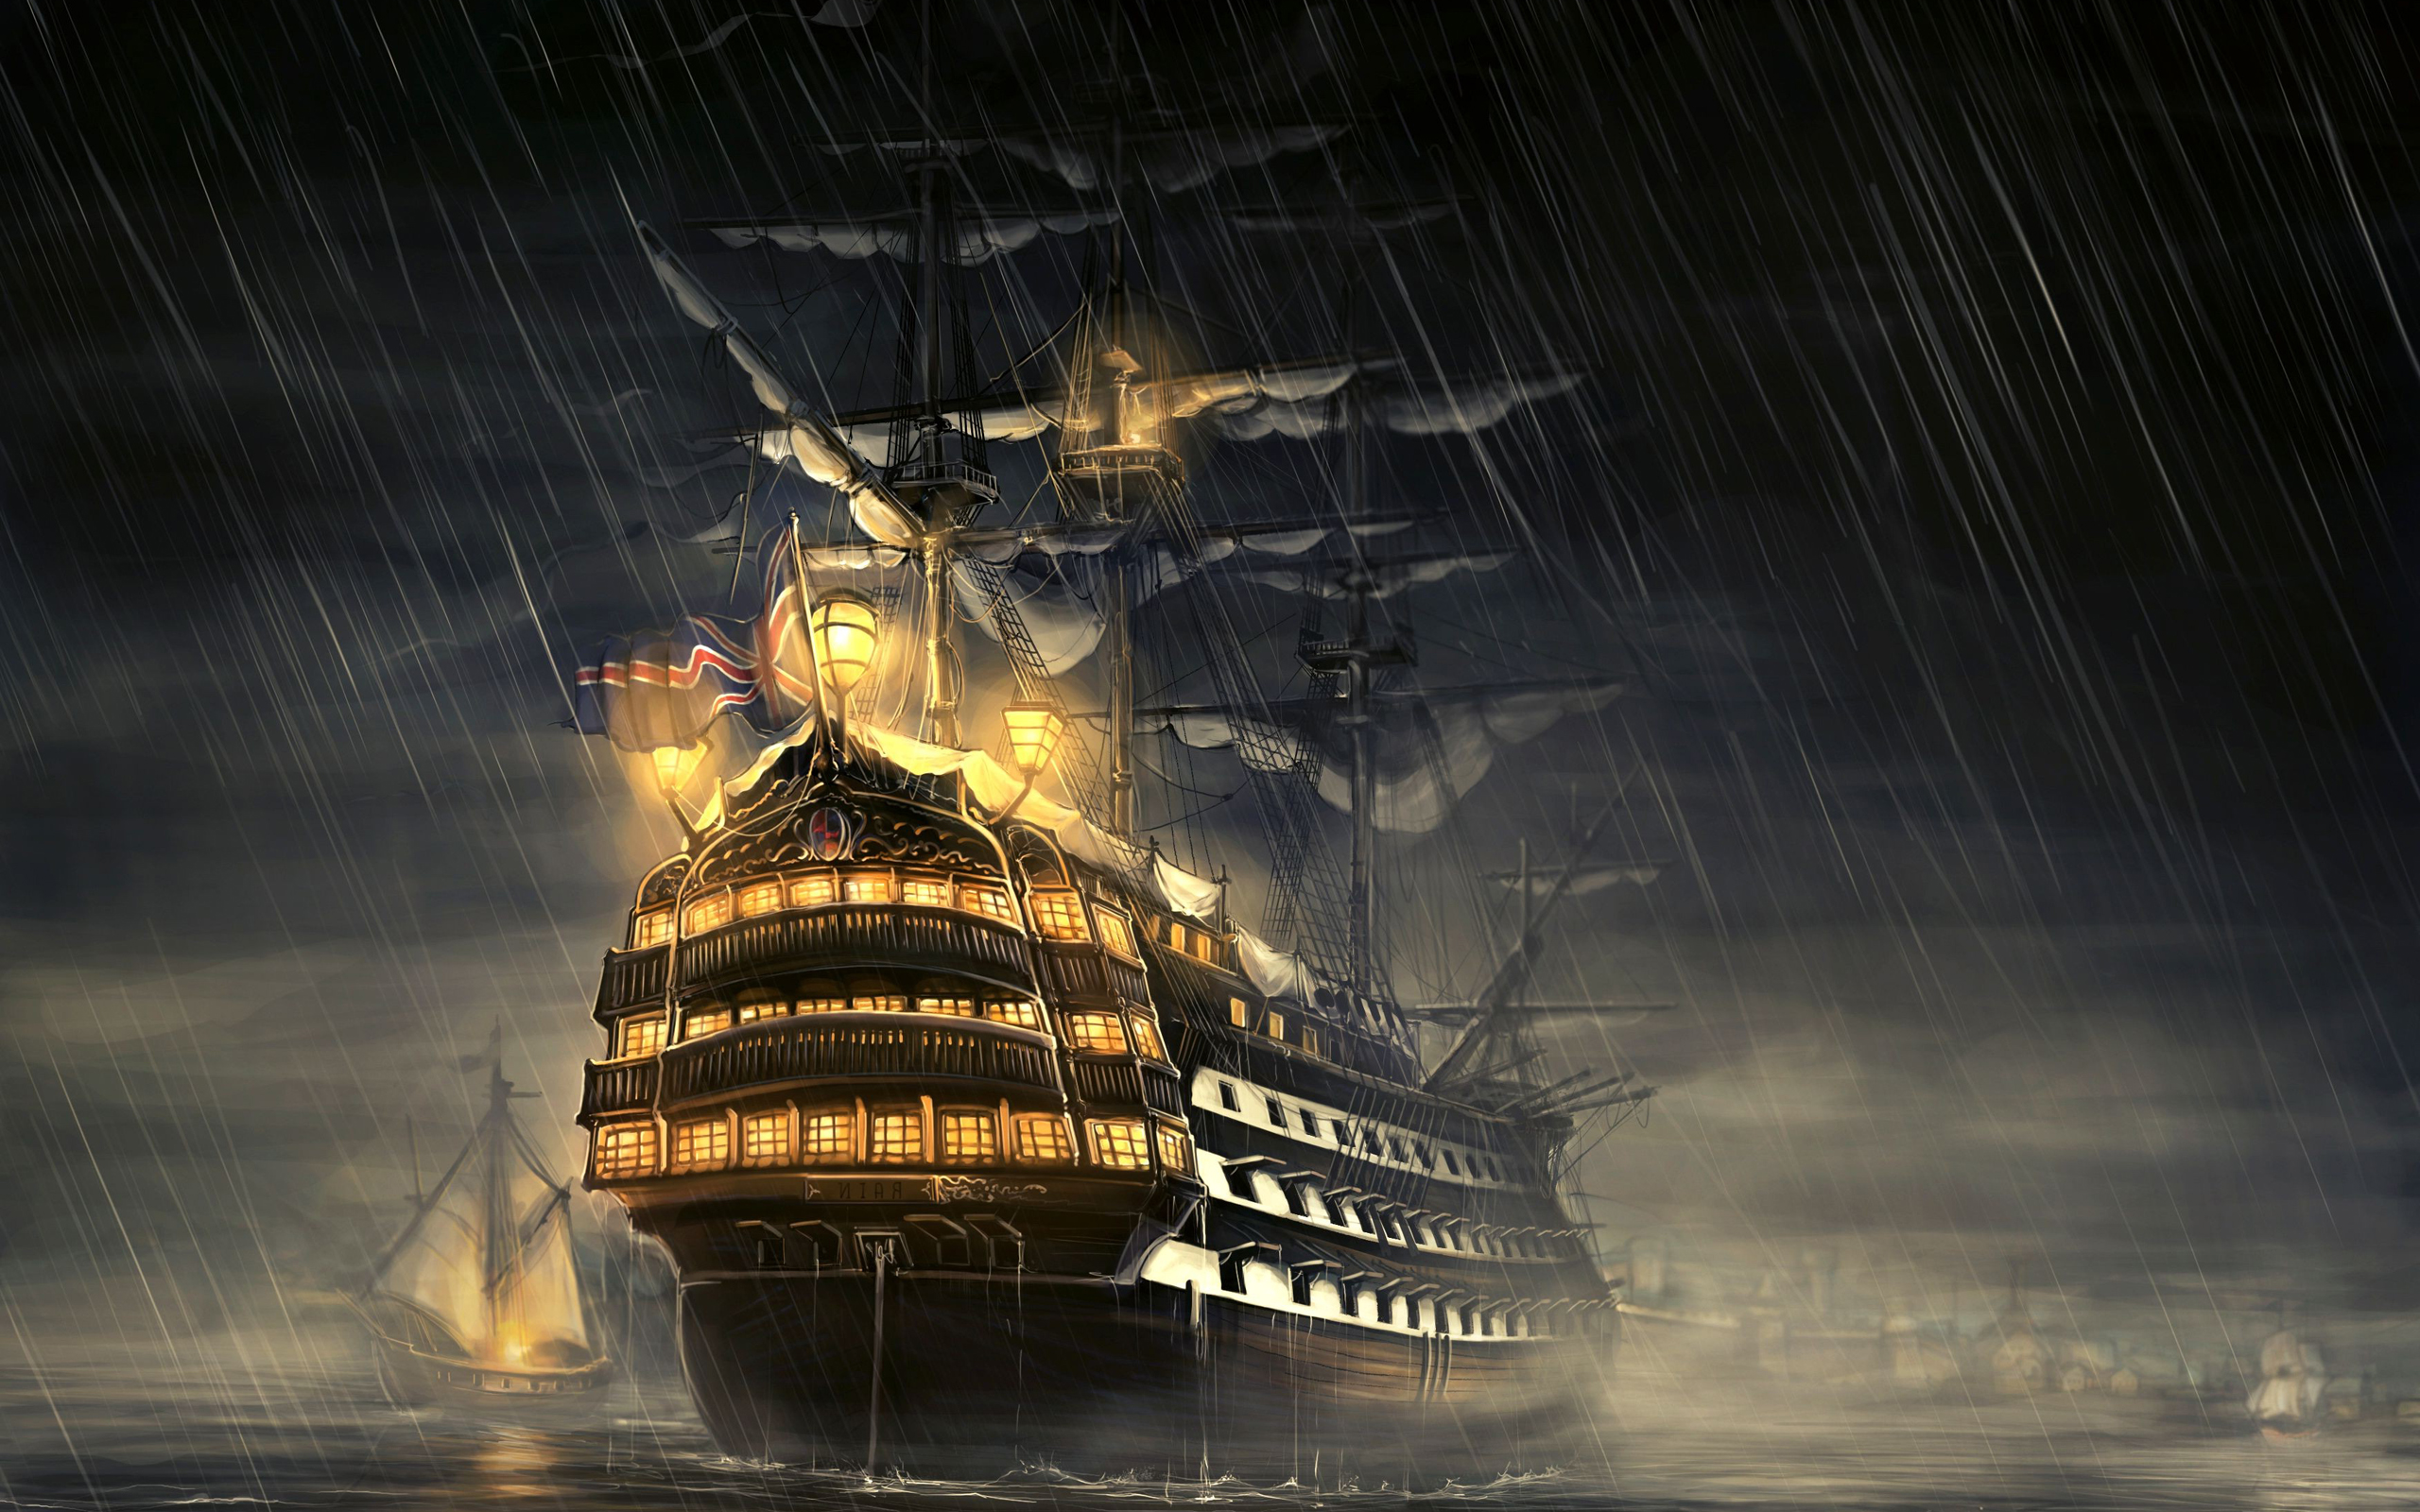 Ship on Sea with Rain 4K | Wide Screen Wallpaper 1080p,2K,4K